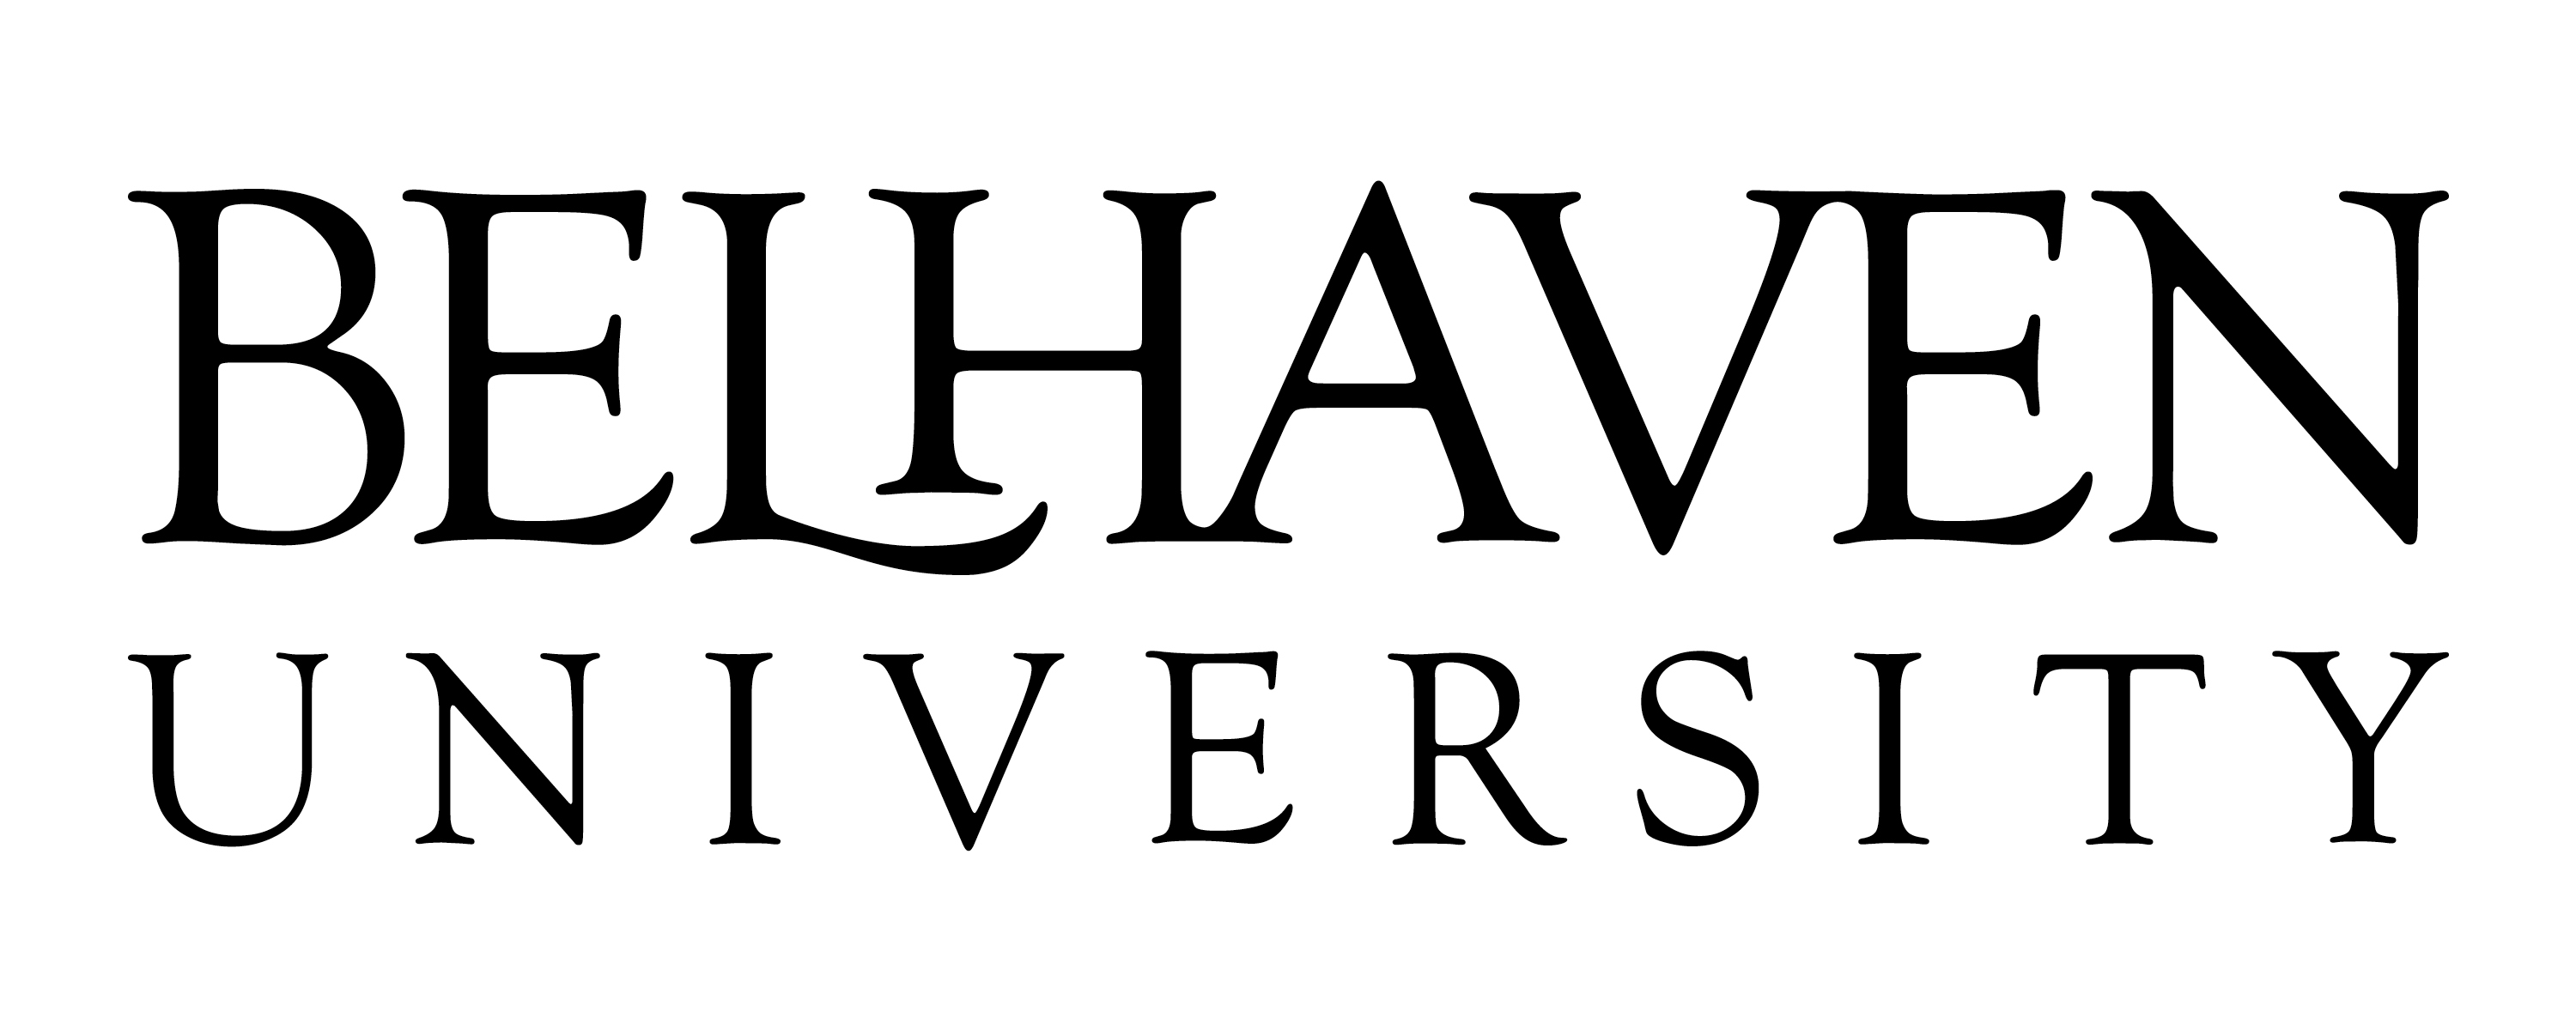 Branding Information: Belhaven University News and Information